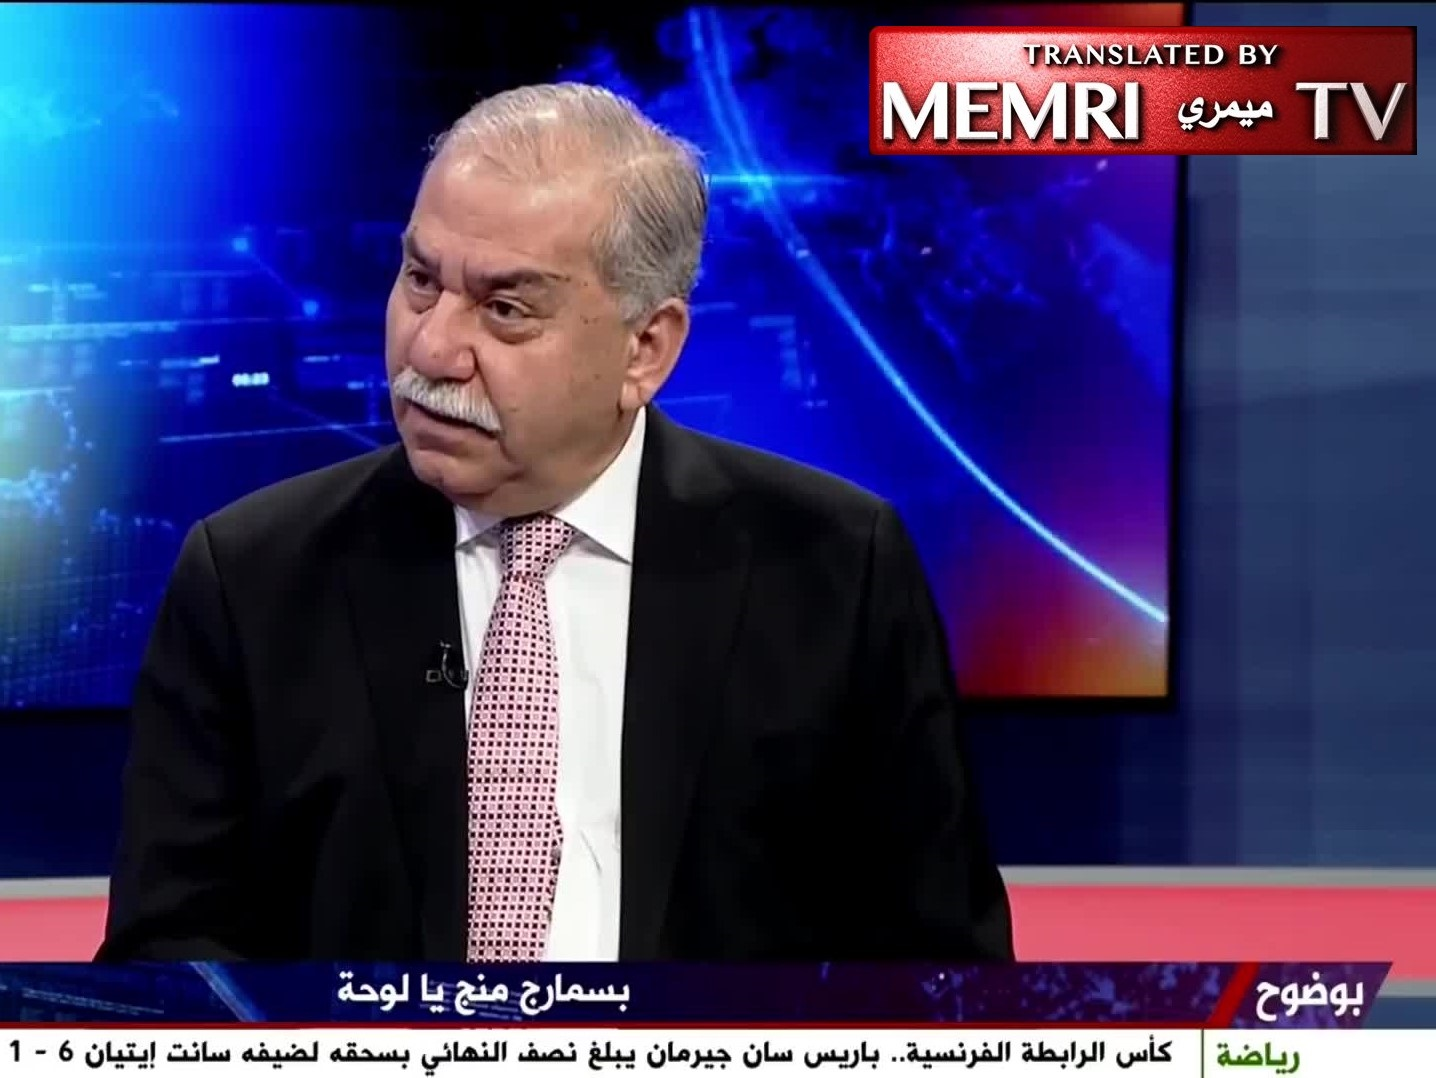 Former Iraqi MP Mithal Al-Alusi: Iraq Should Free Itself from the Corrupt and Deviant Terrorist Group That Controls it; The State Should Use Force to Confiscate the Weapons of the Militias